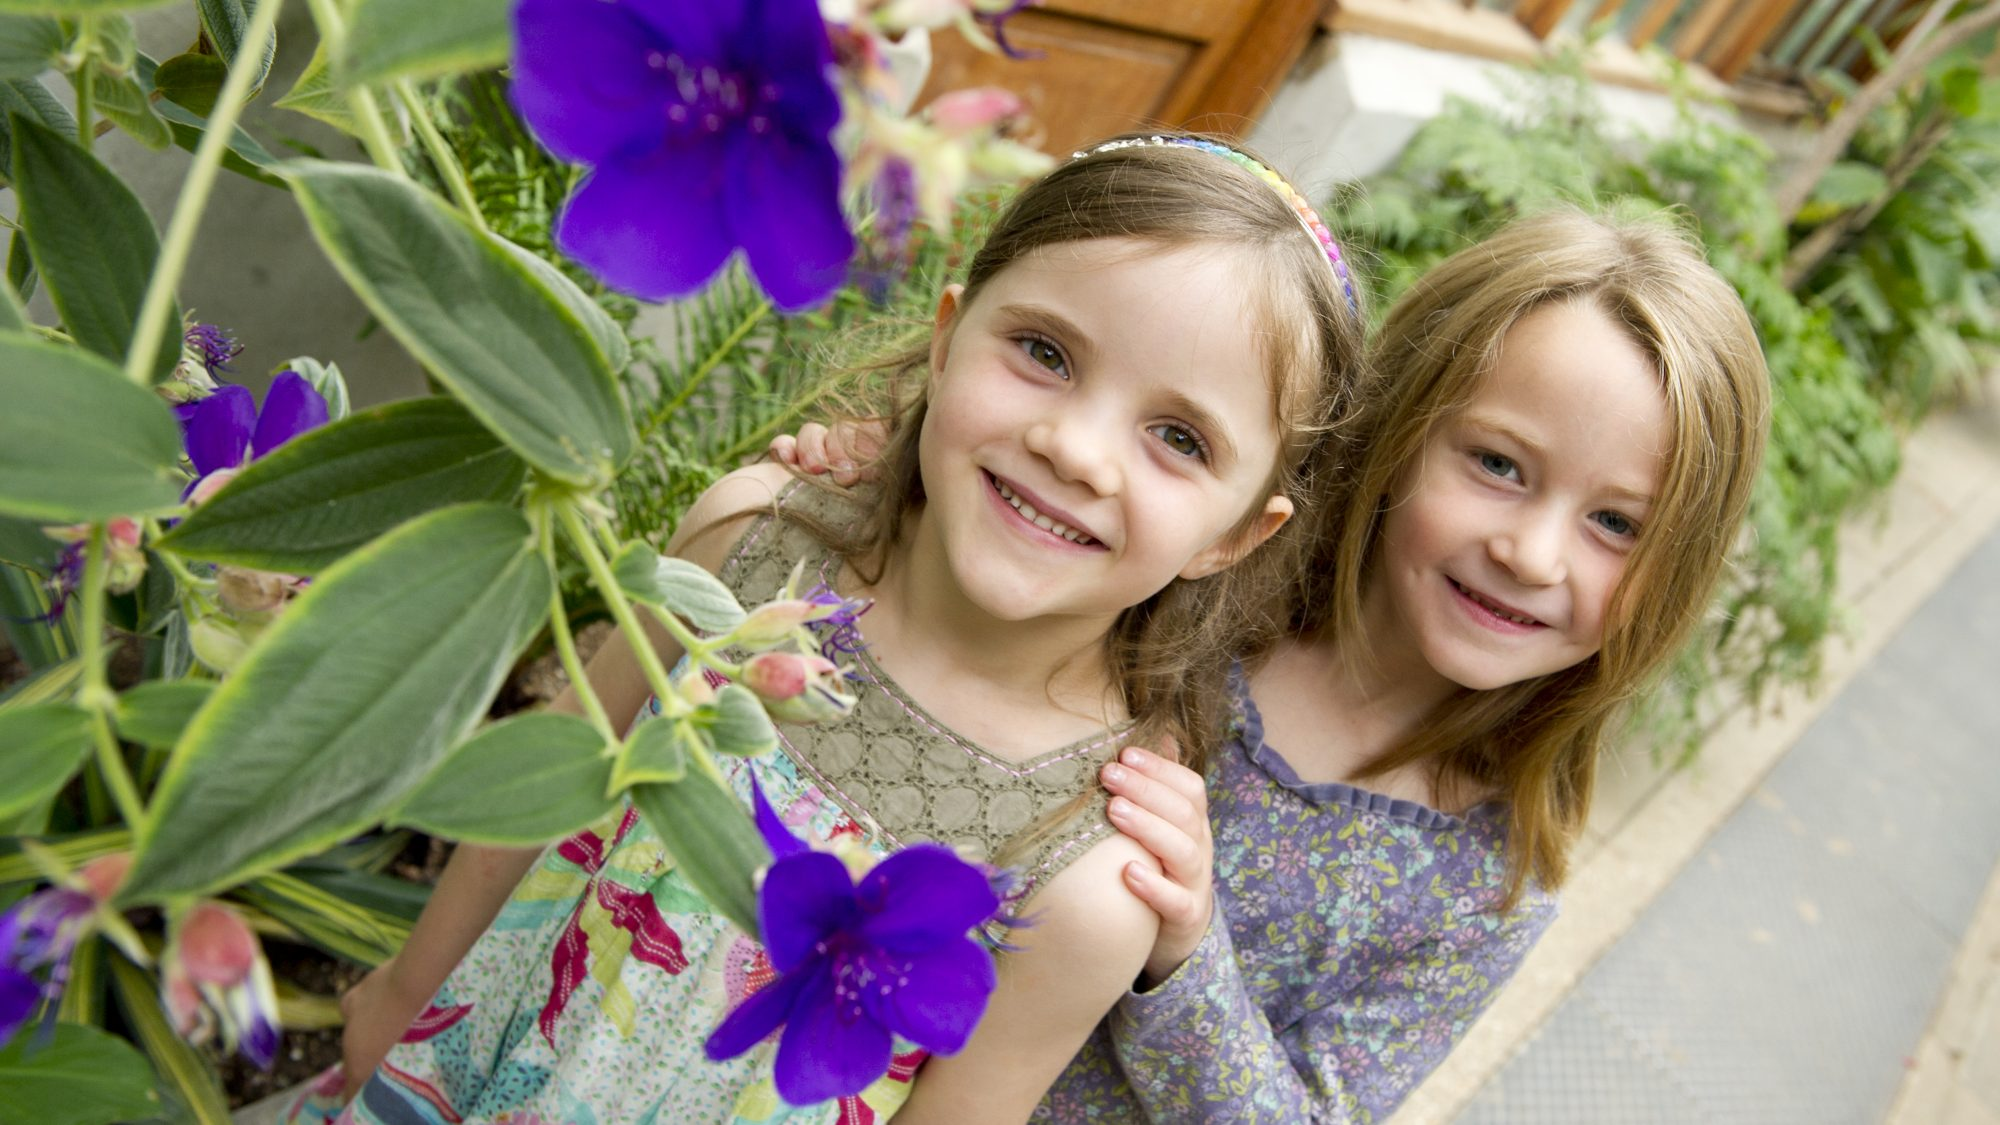 Two children and a purple flower plant